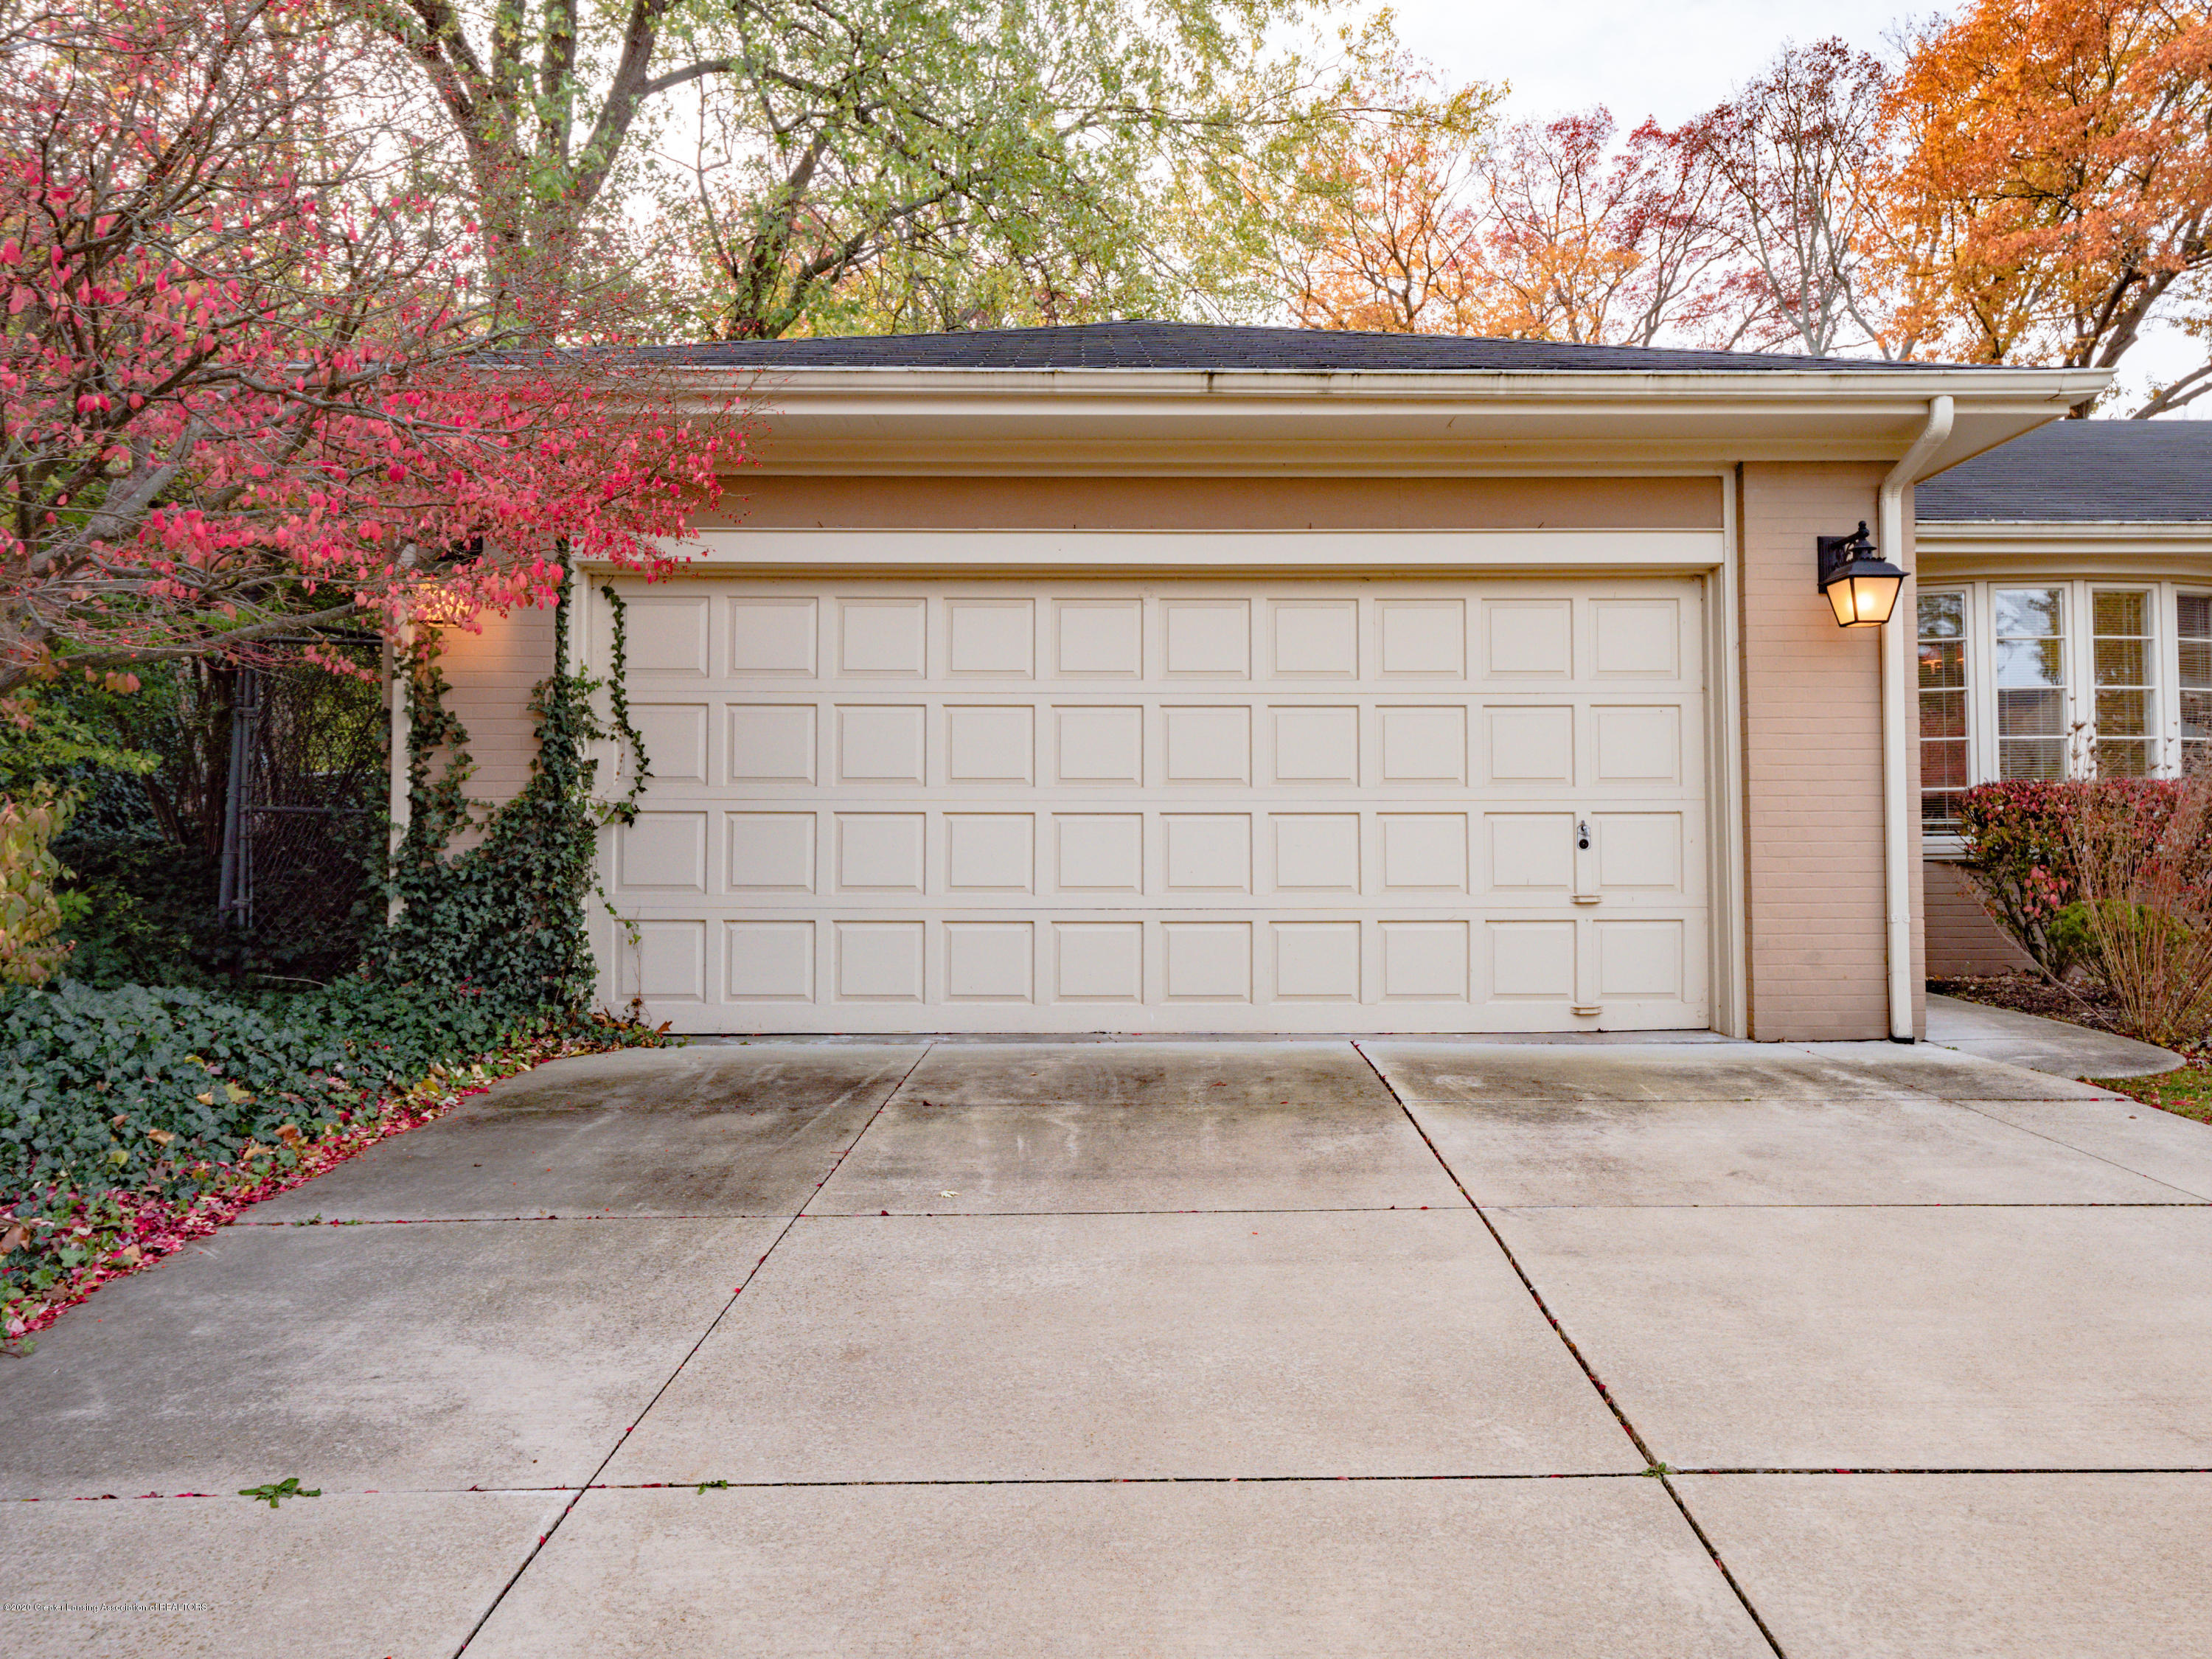 553 Southlawn Ave - 553_Southlawn_Ave-4 - 41